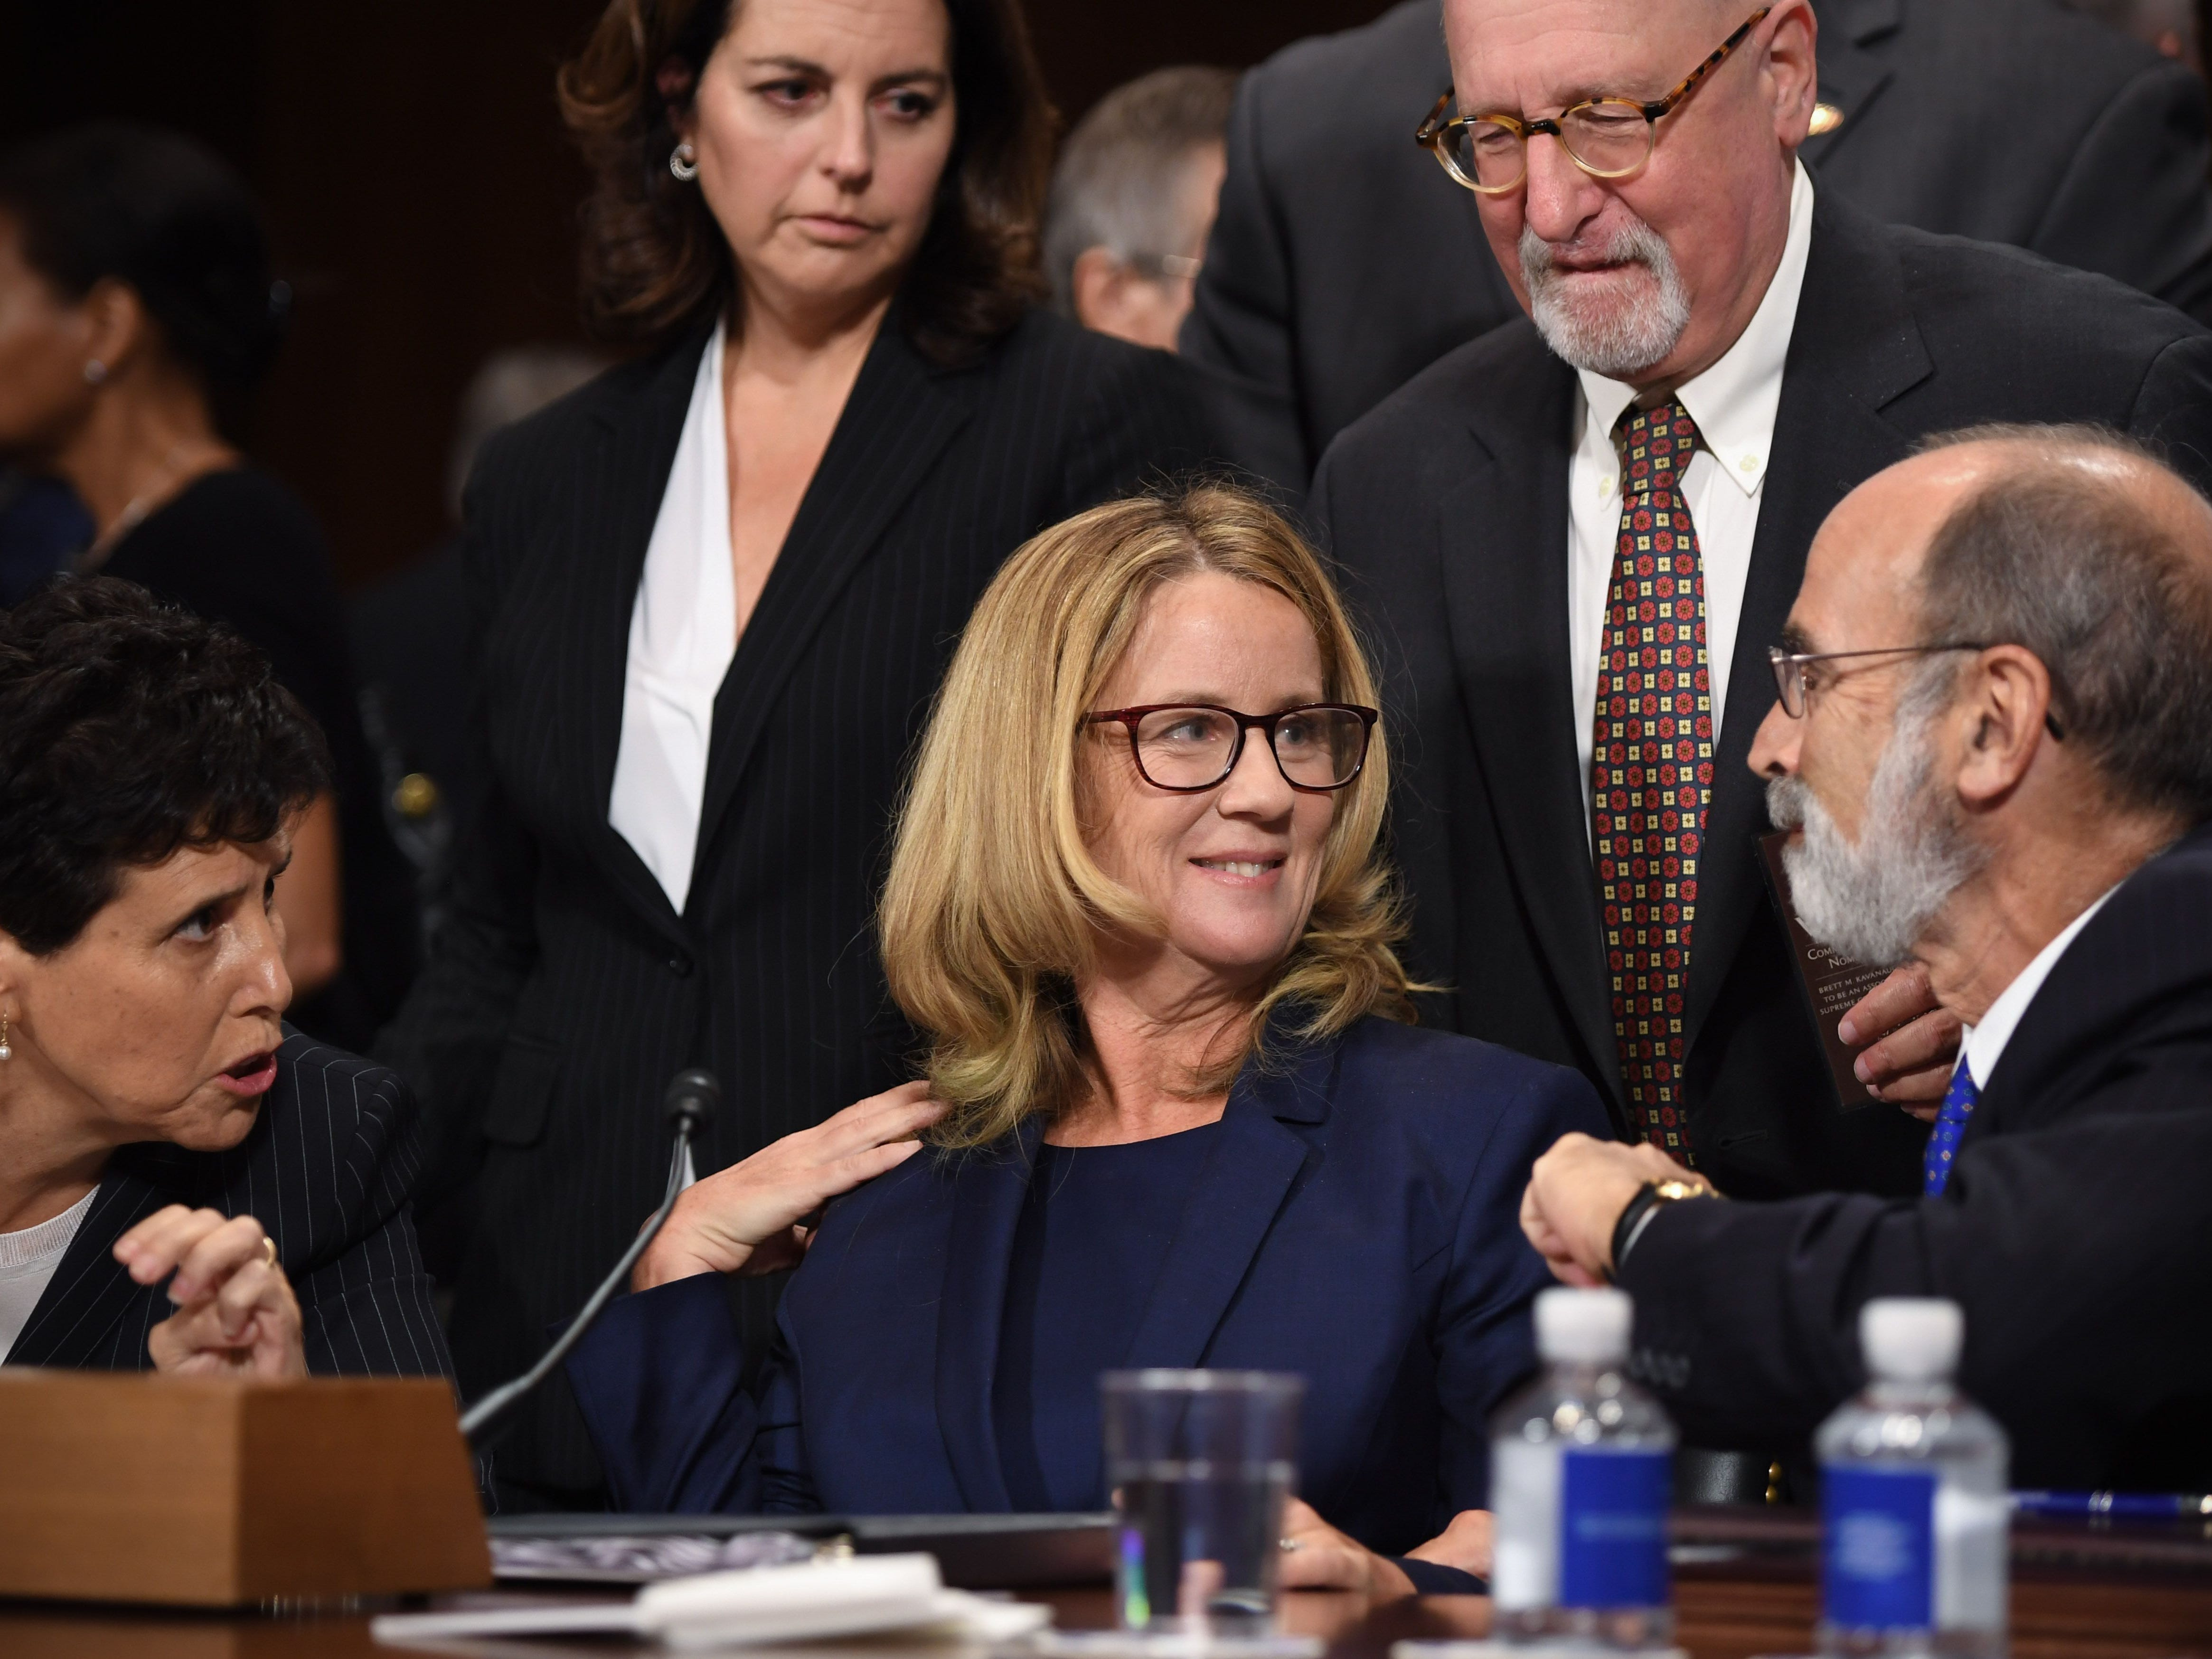 Christine Blasey Ford, the woman accusing Supreme Court nominee Brett Kavanaugh of sexually assaulting her at a party 36 years ago, chats with her attorneys as she testifies before the US Senate Judiciary Committee on Capitol Hill in Washington, DC, September 27, 2018. (Photo by SAUL LOEB / POOL / AFP)SAUL LOEB/AFP/Getty Images ORIG FILE ID: AFP_19I6B6